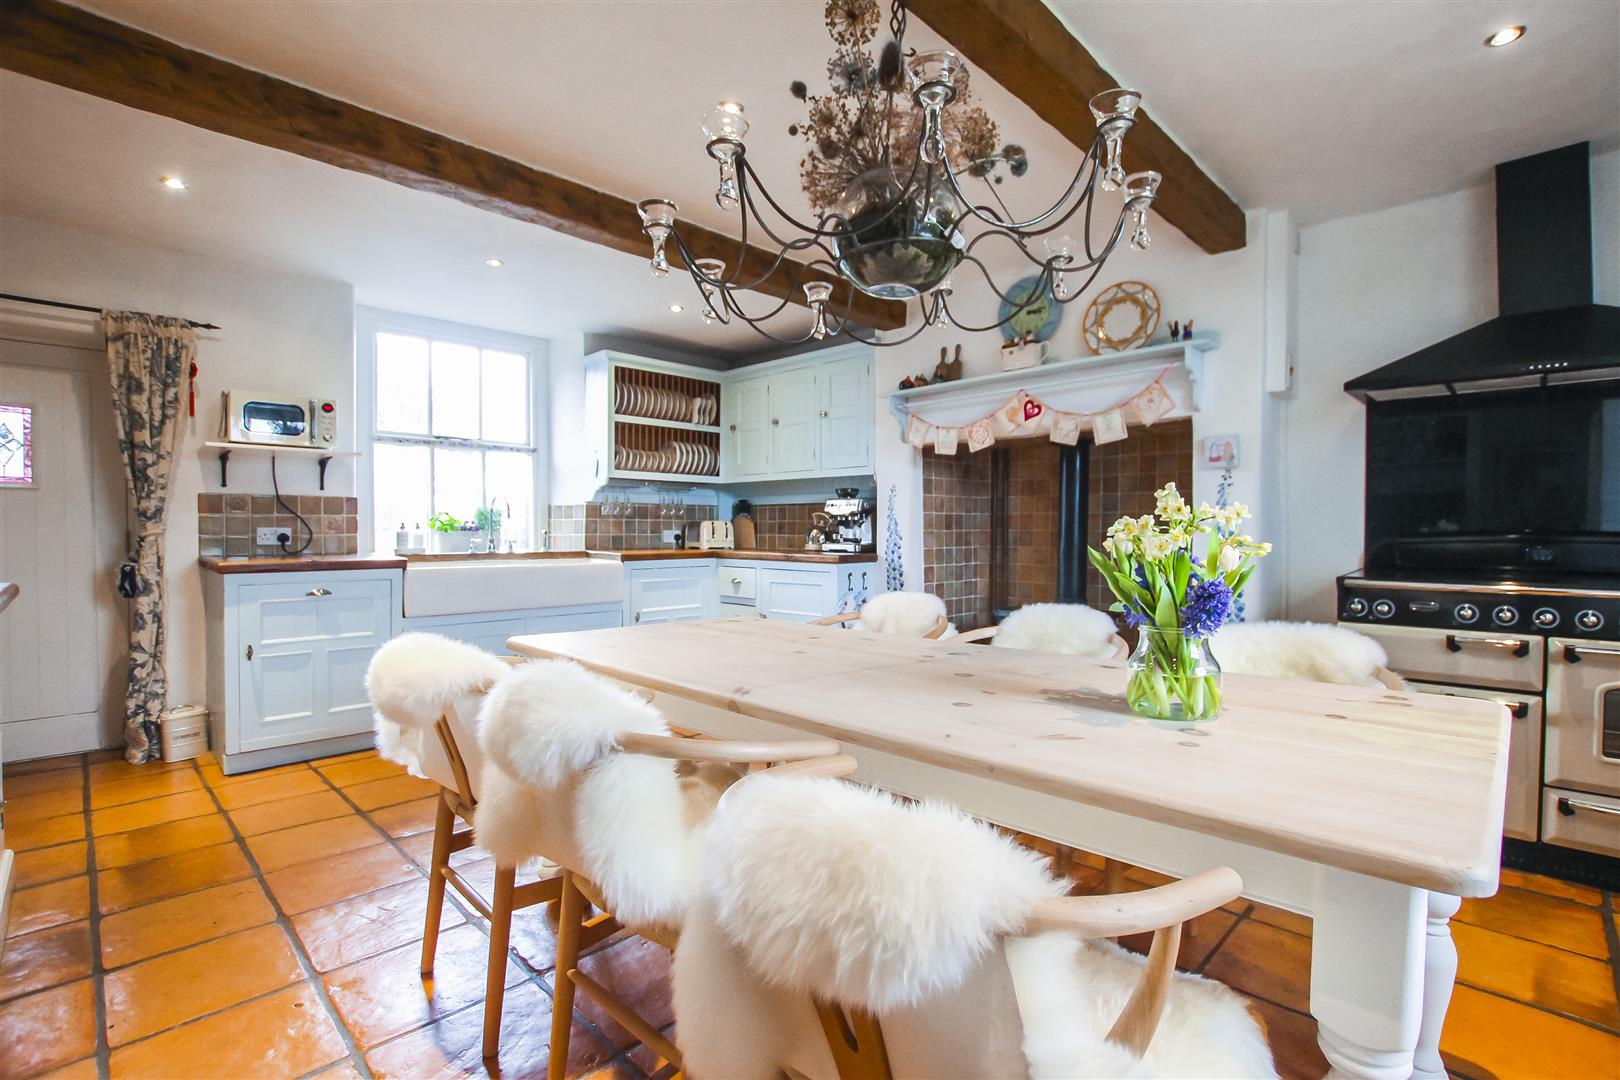 4 Bedroom House For Sale - Kitchen